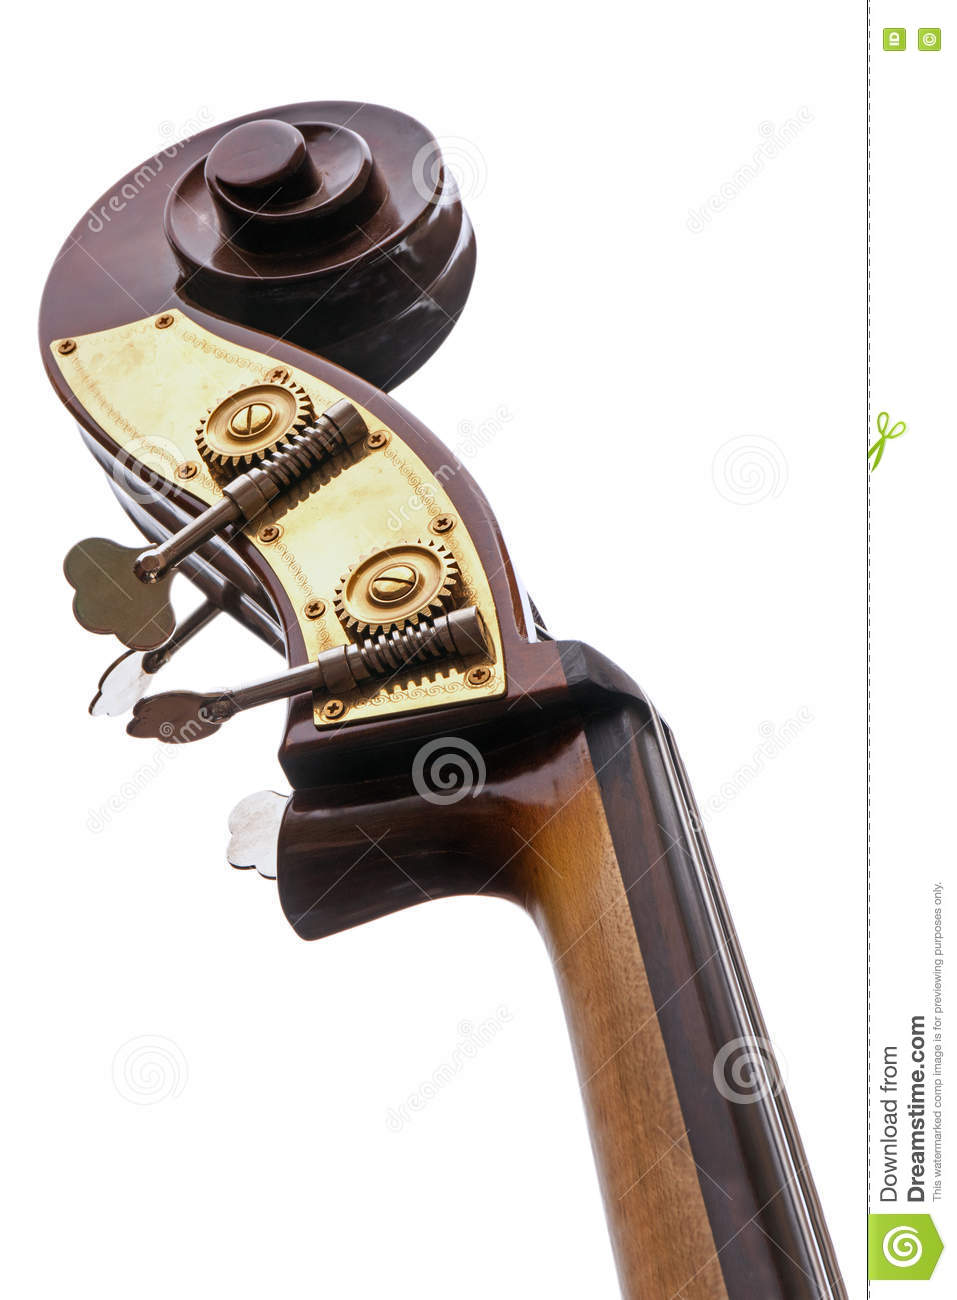 Part of a double bass, musical instrument of the violin family solated on a white background